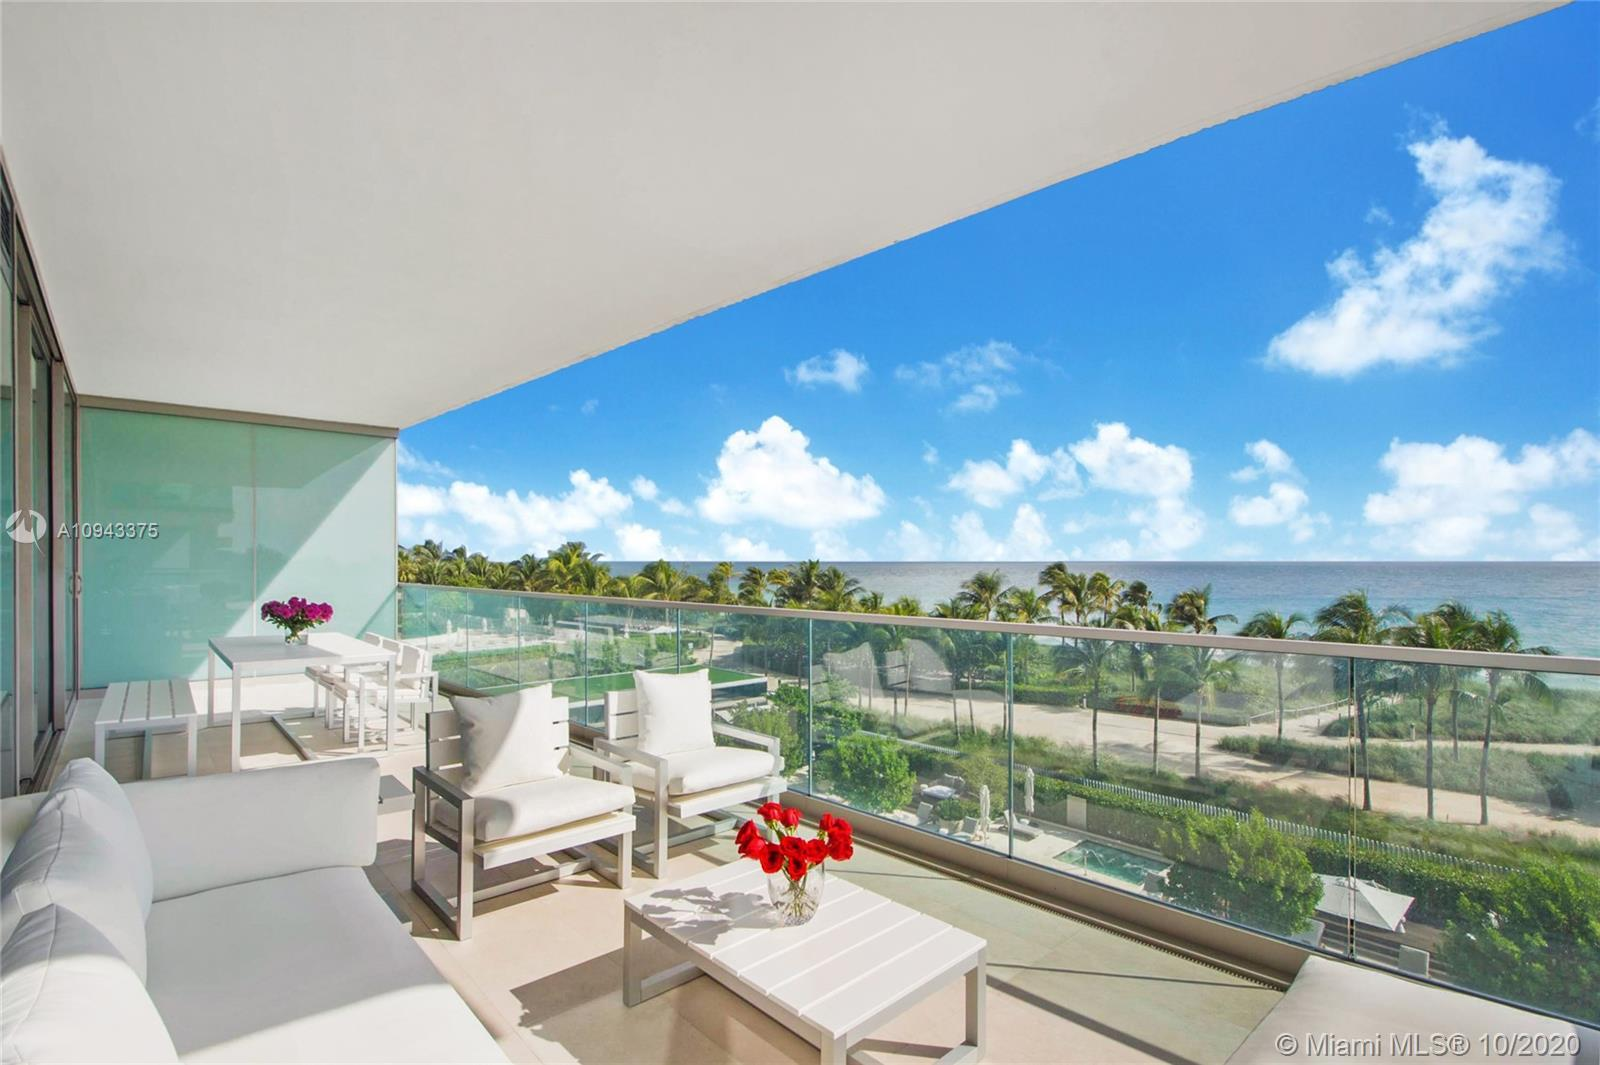 Amazing oceanfront 1 bed + den / 2 full bath residence complete with top-of-the-line finishes and fi